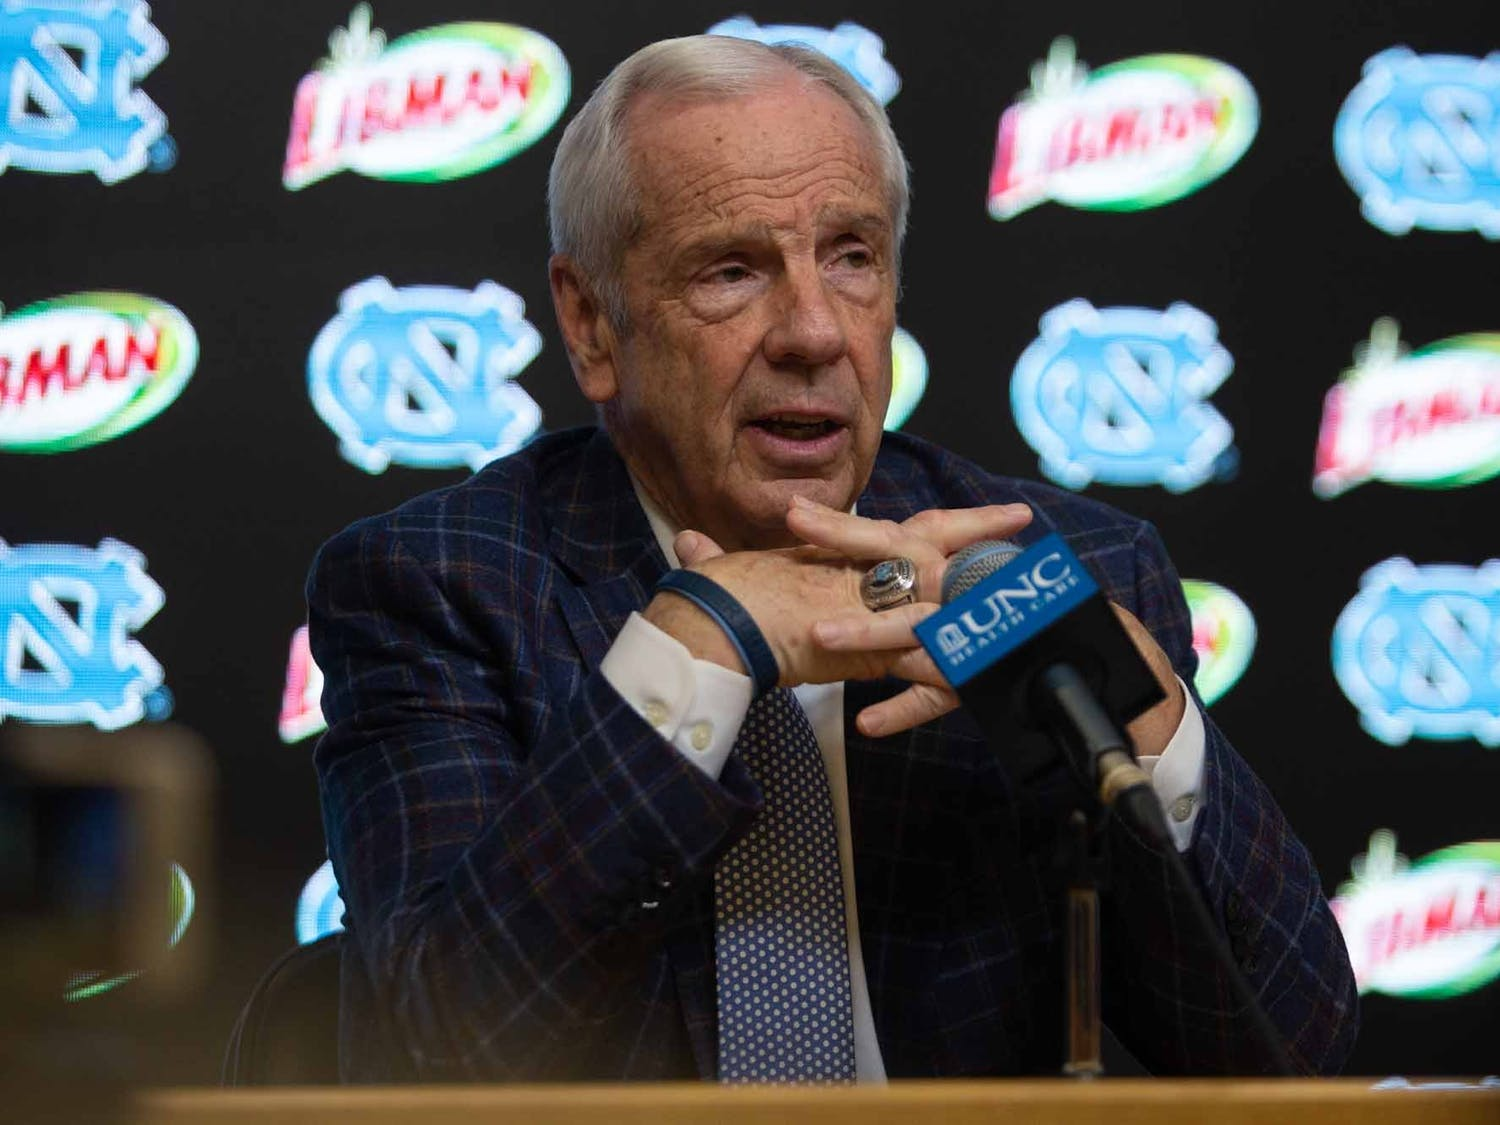 UNC men's basketball head coach Roy Williams speaks to the press after the game against Virginia in the Smith Center on Saturday, Feb. 15, 2020. UNC fell 64-62 against UVA.